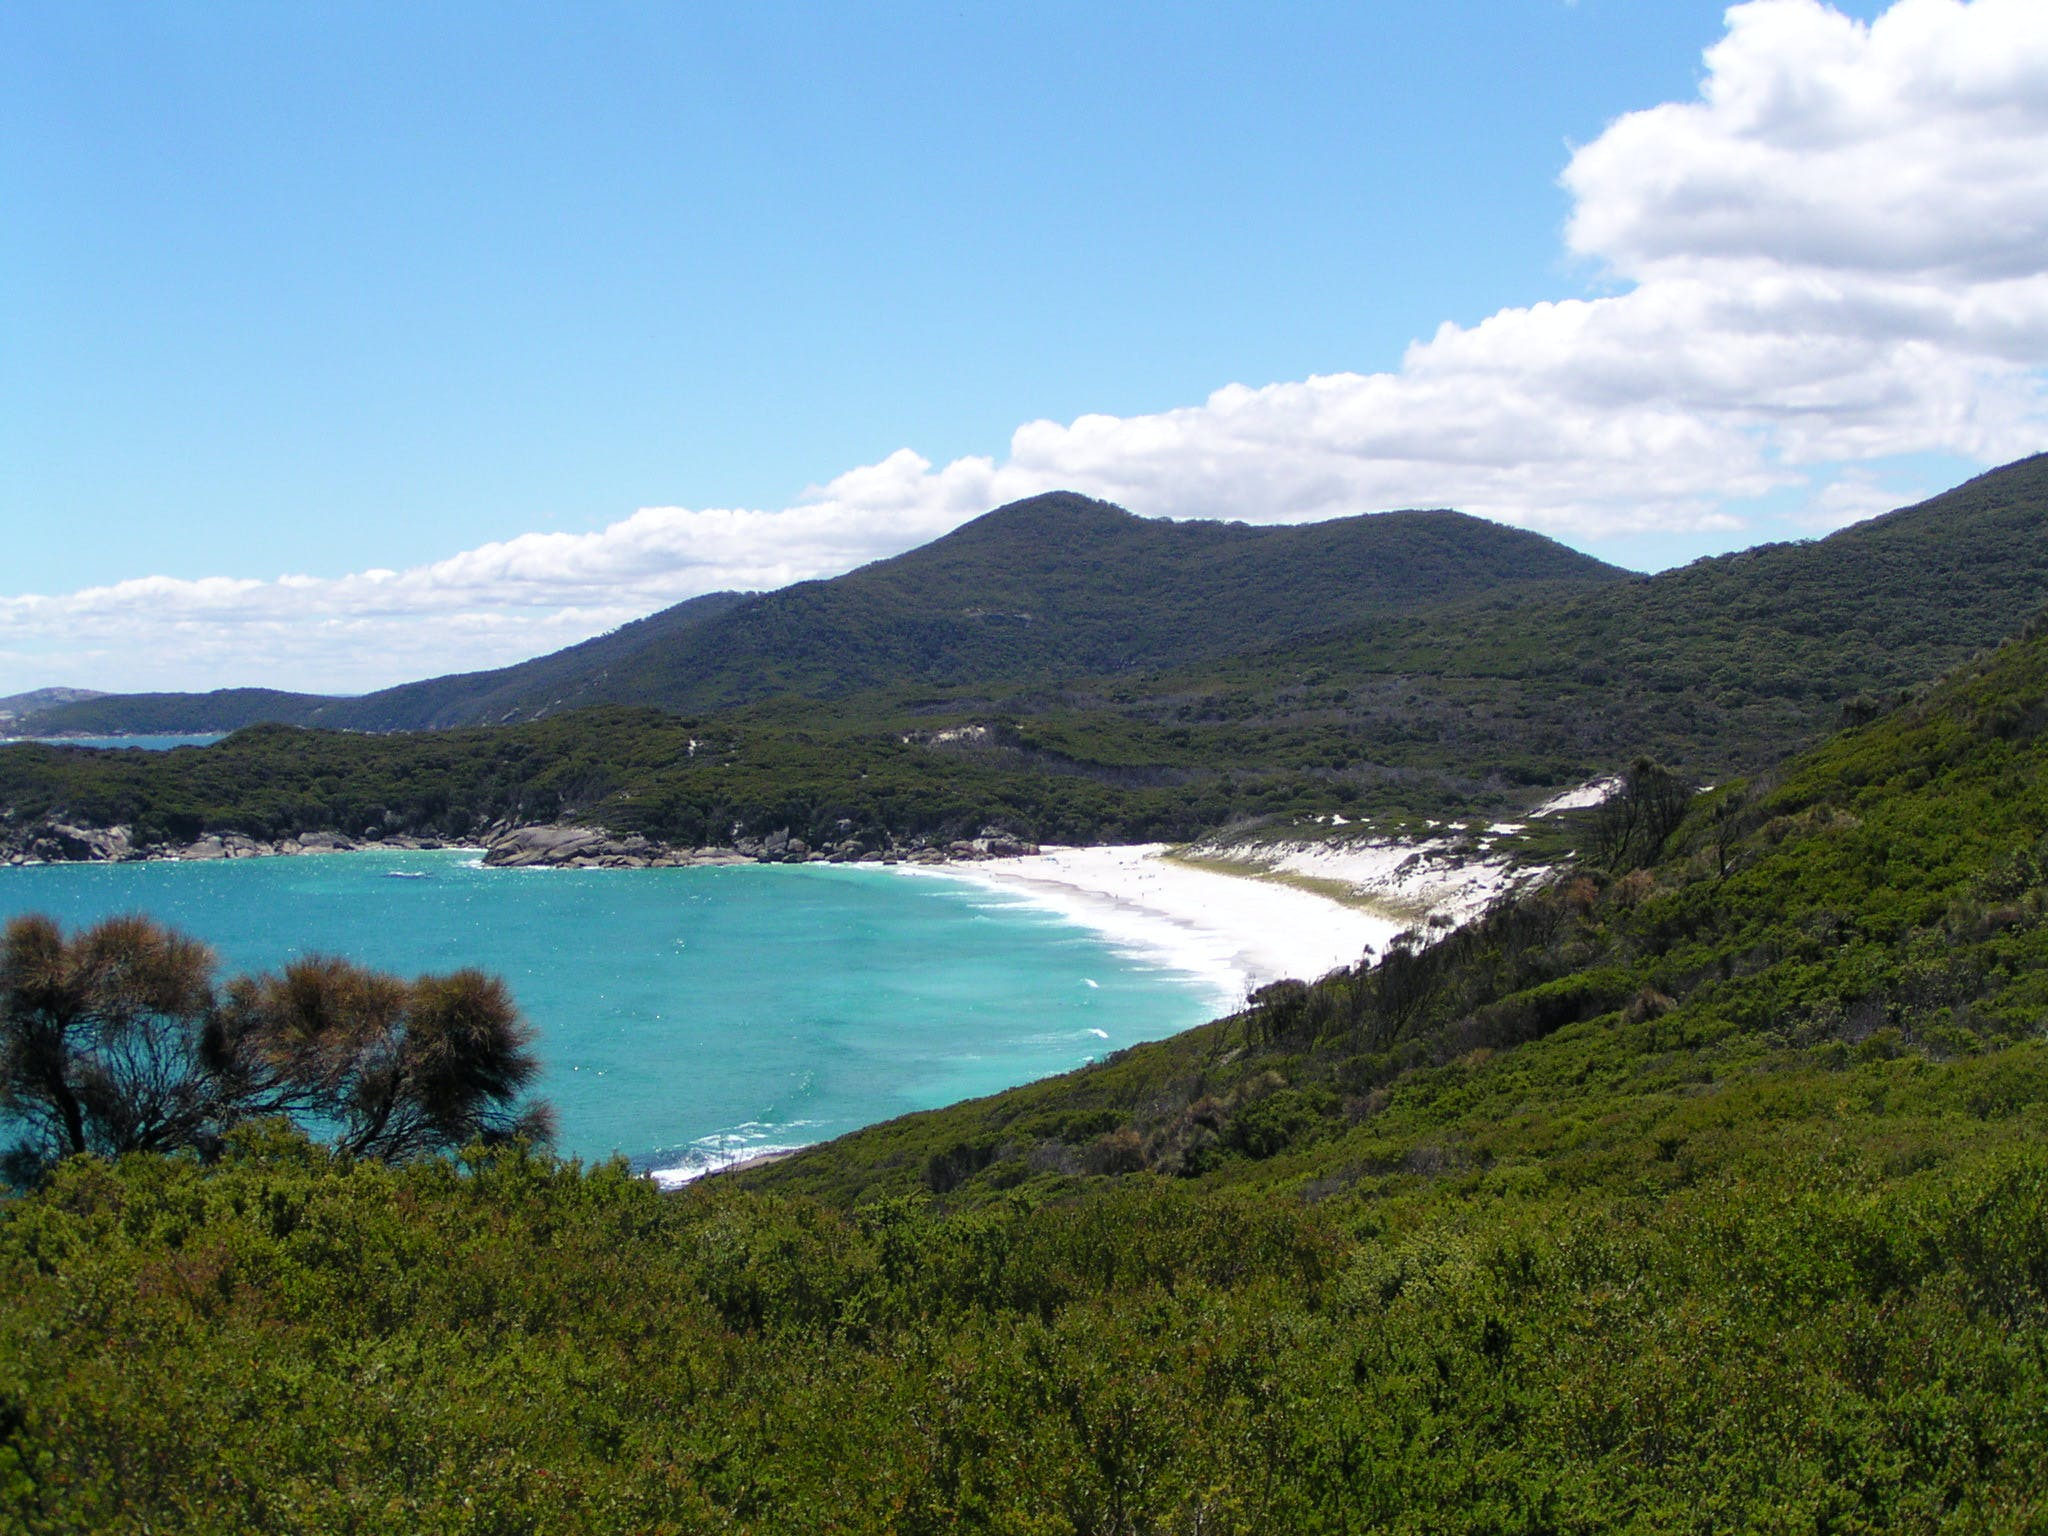 Wilsons Promontory view from hilltop